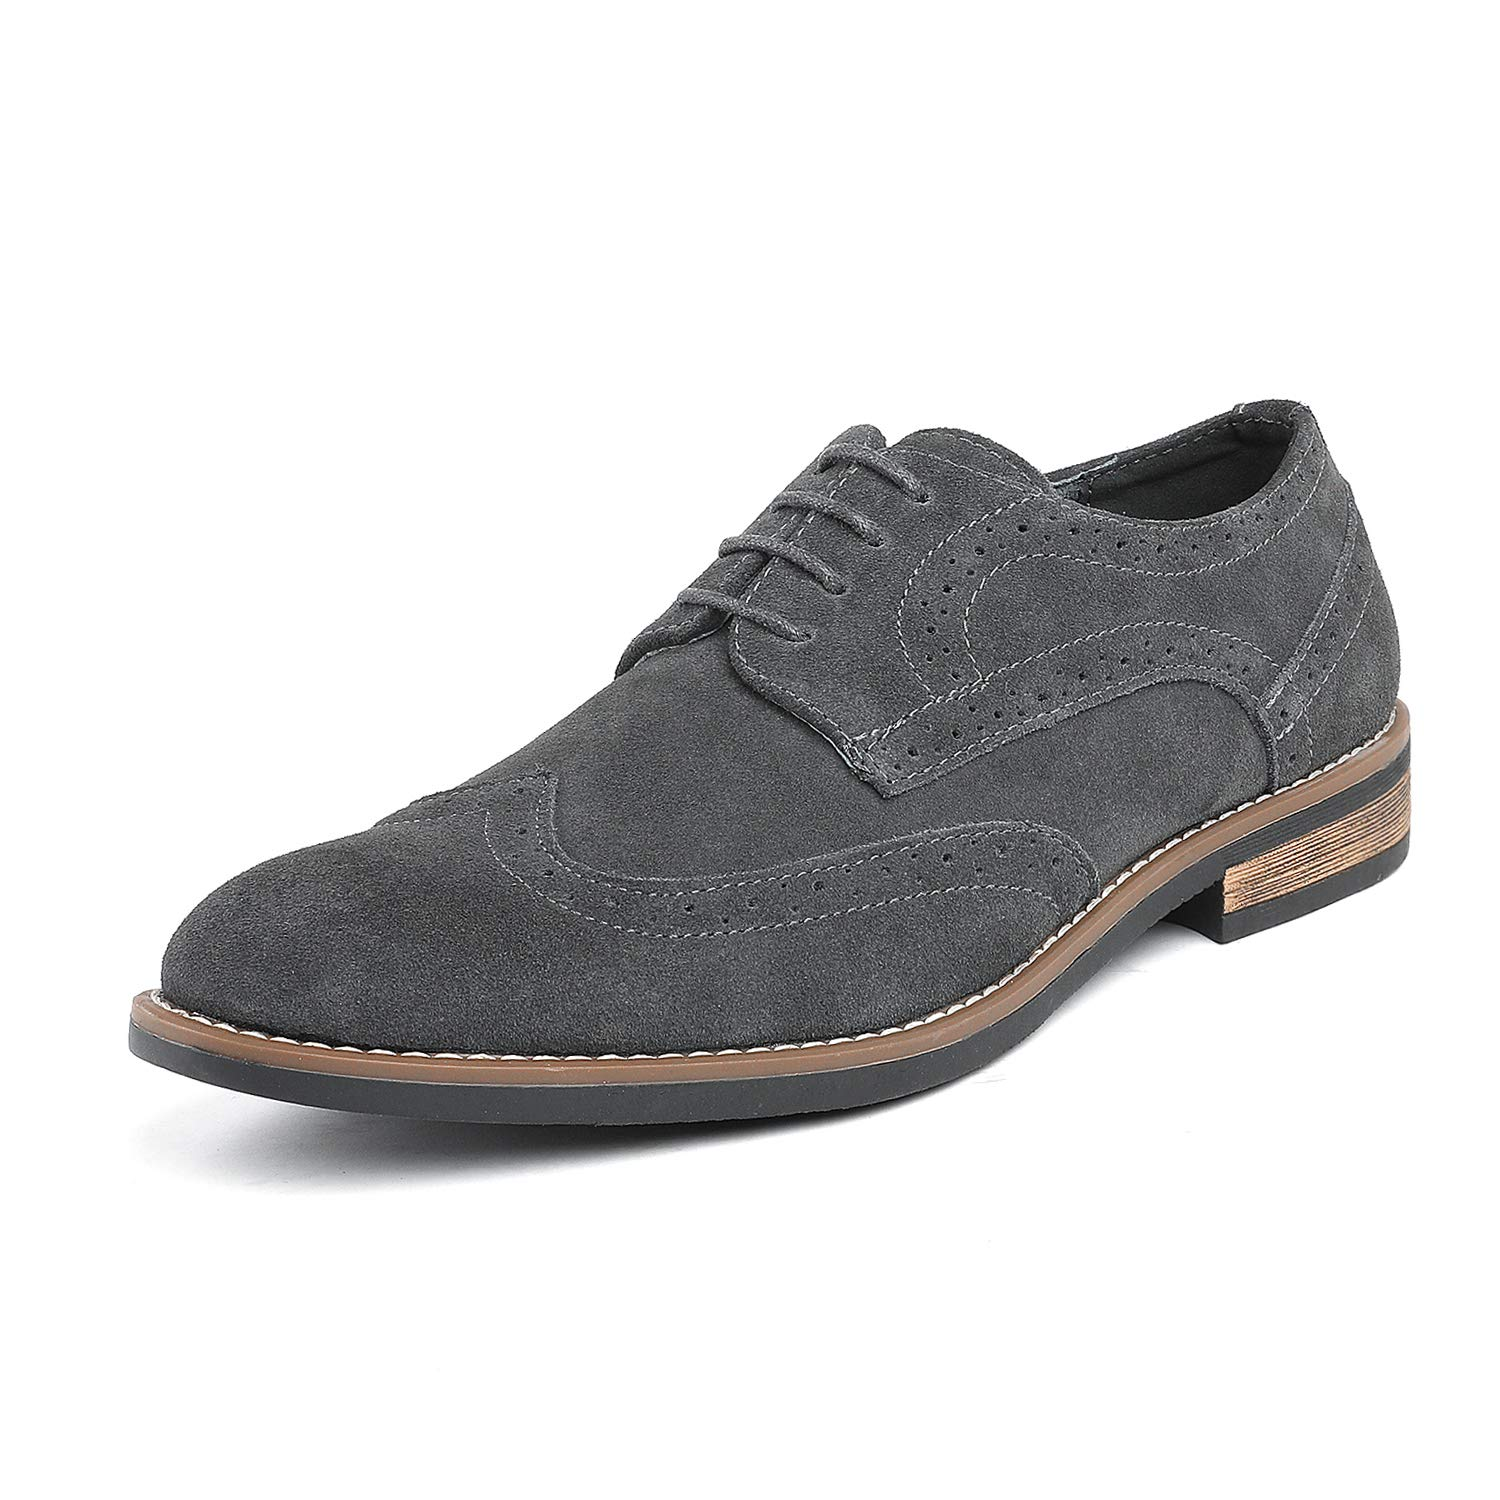 dcd59b7810192a See all customer reviews · Bruno Marc Men s Urban Suede Leather Lace Up  Oxfords Shoes product image